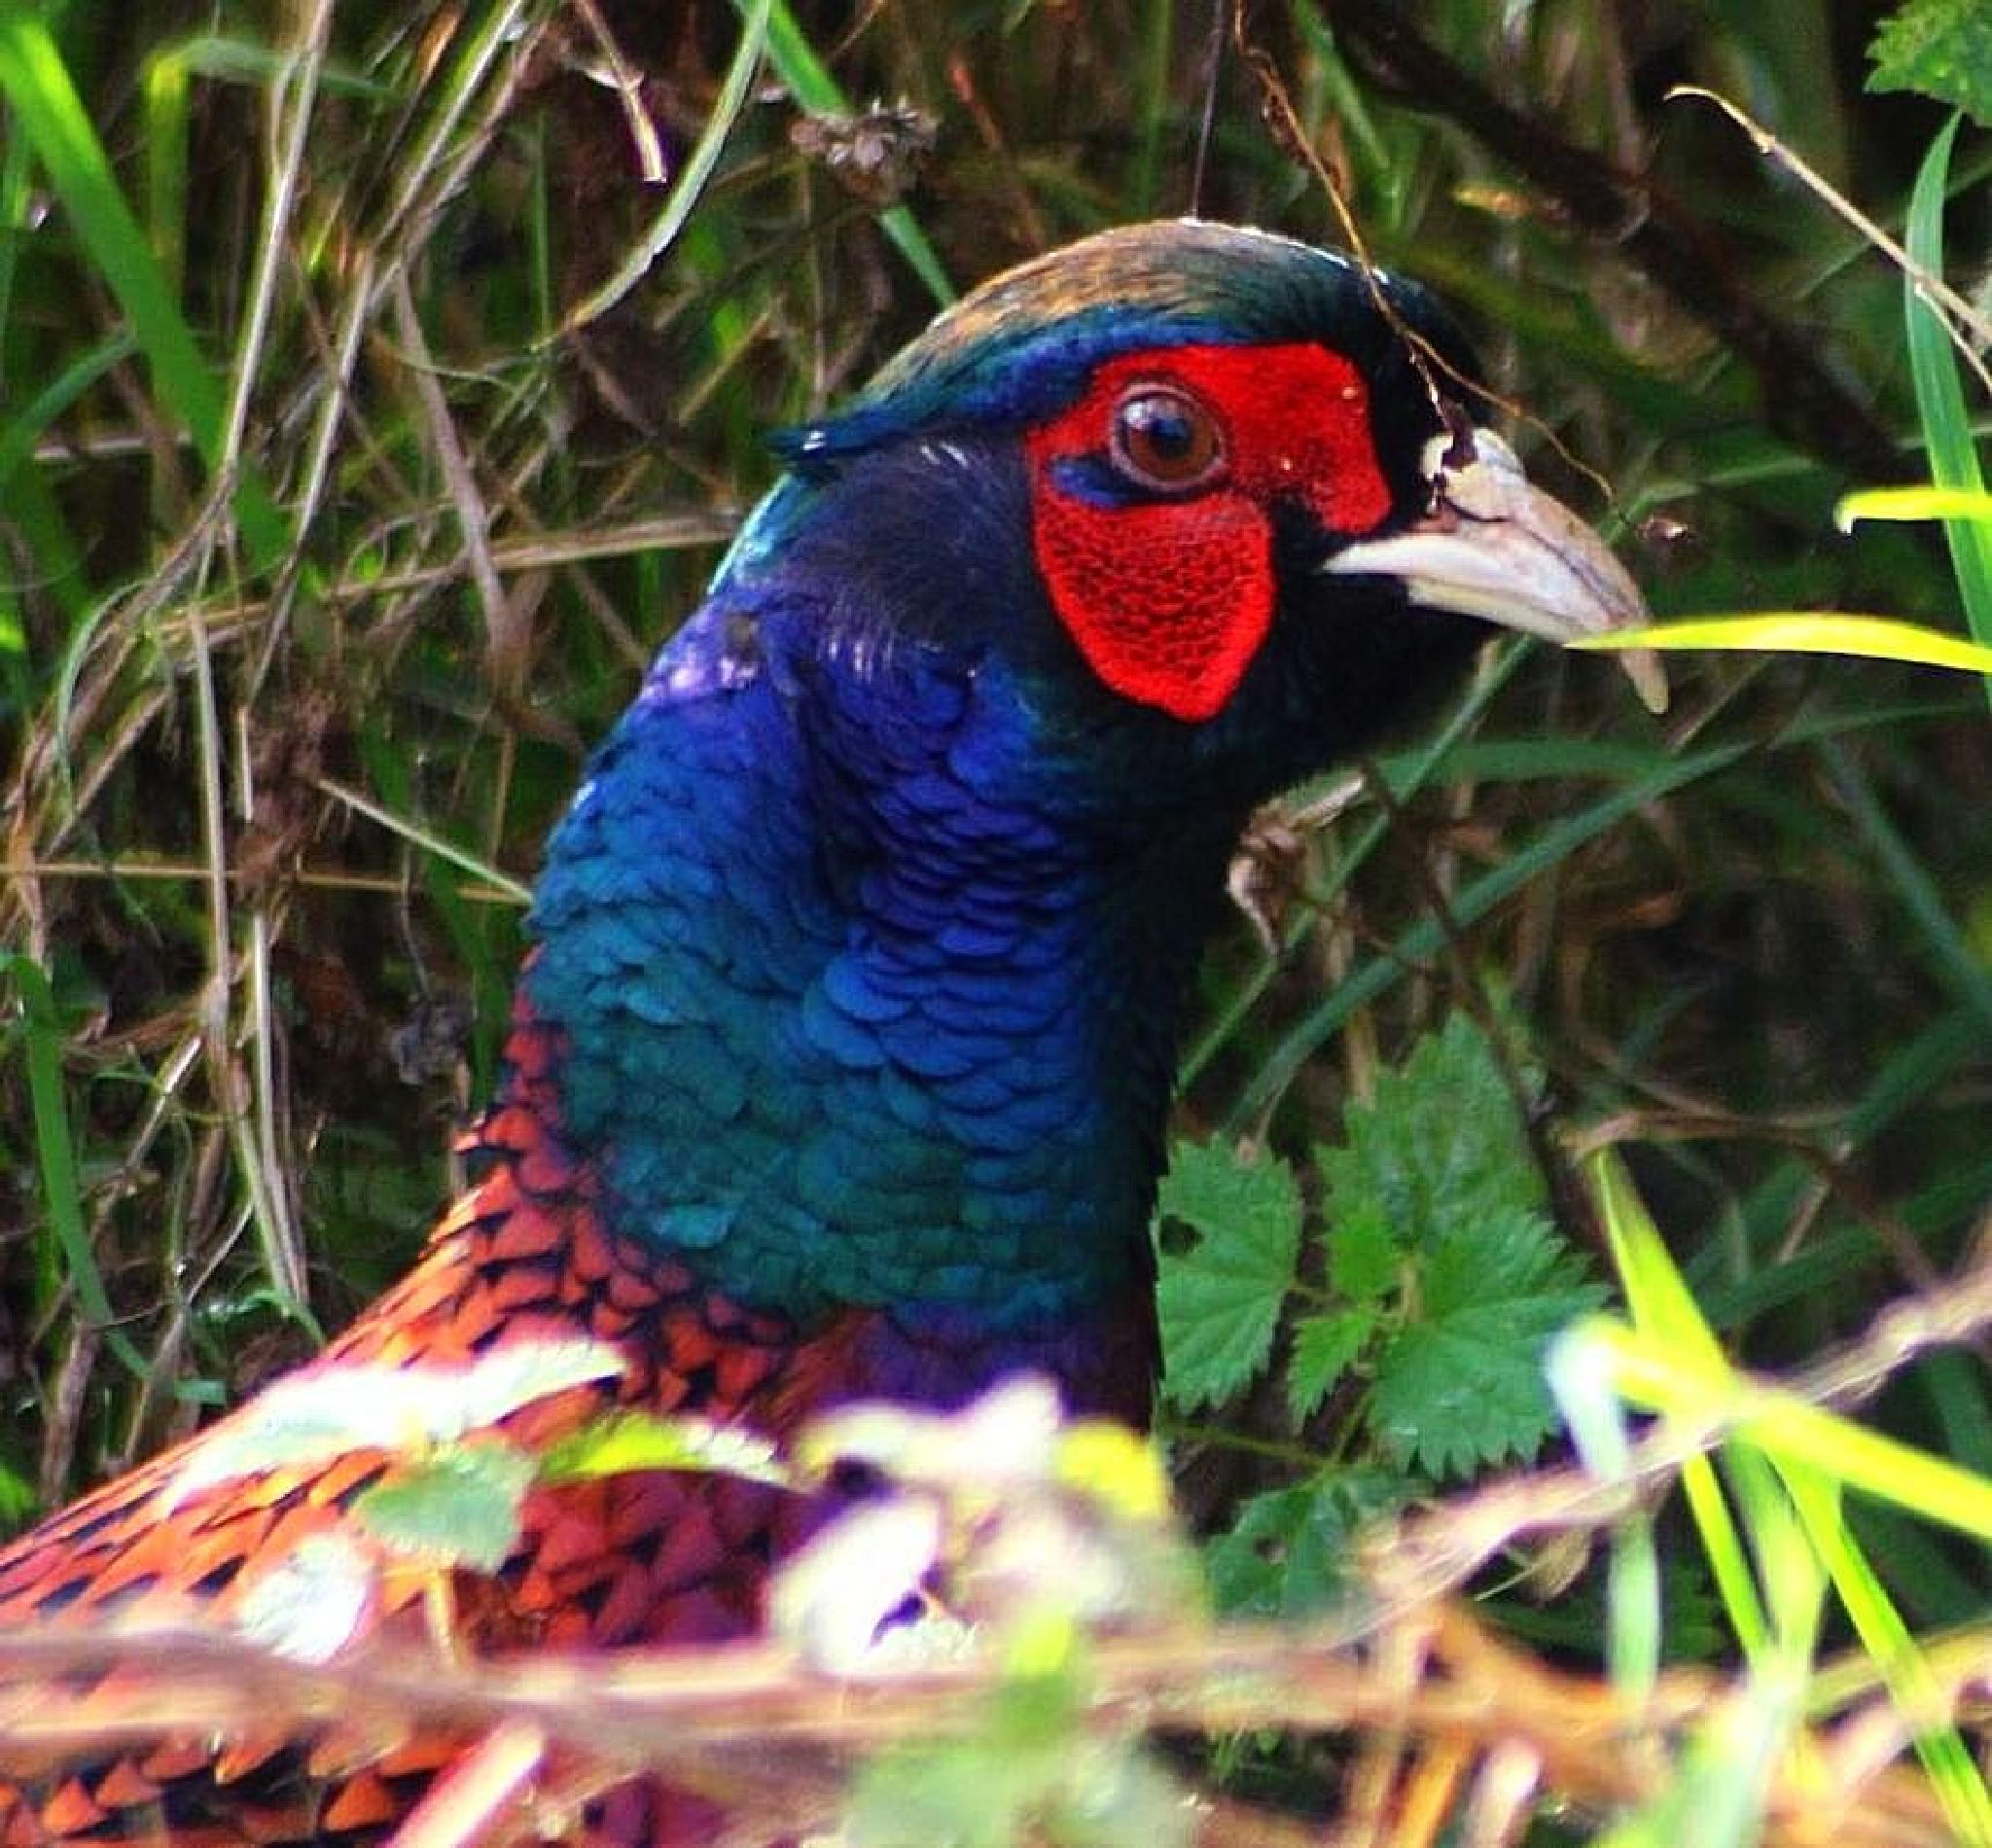 Pheasant by ralph.cook2